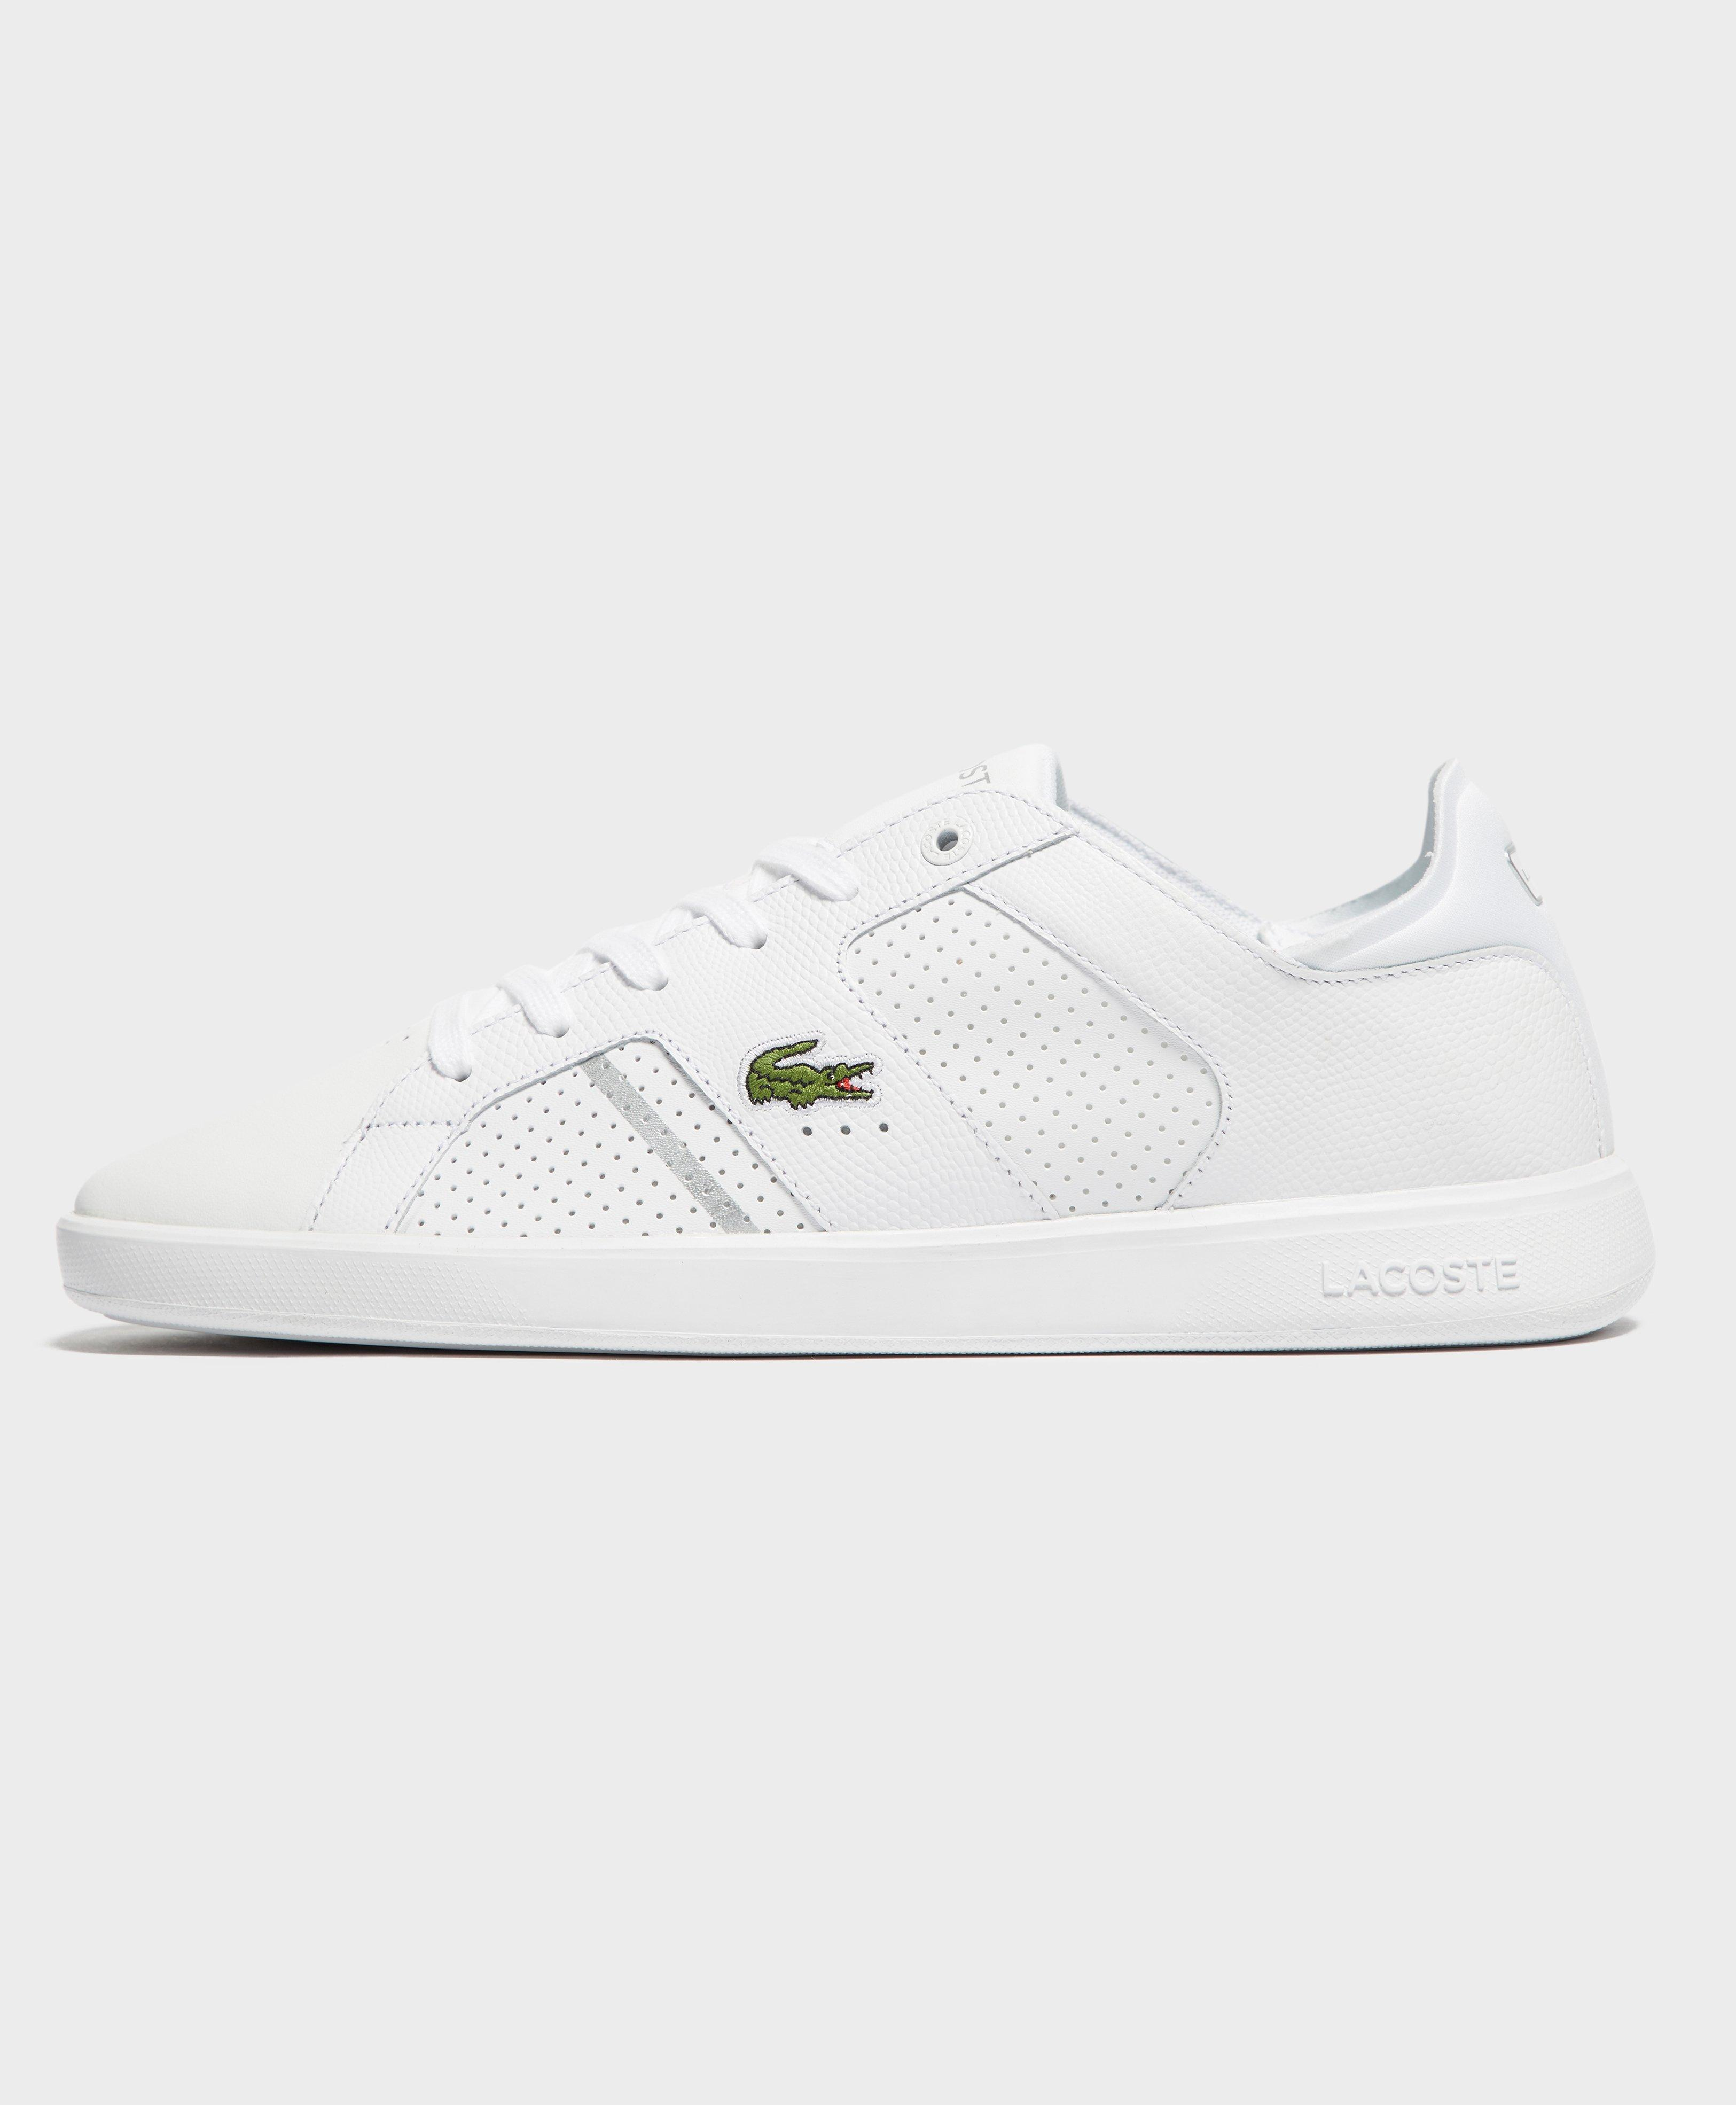 98160c1da0673e Lacoste Novas in White for Men - Lyst